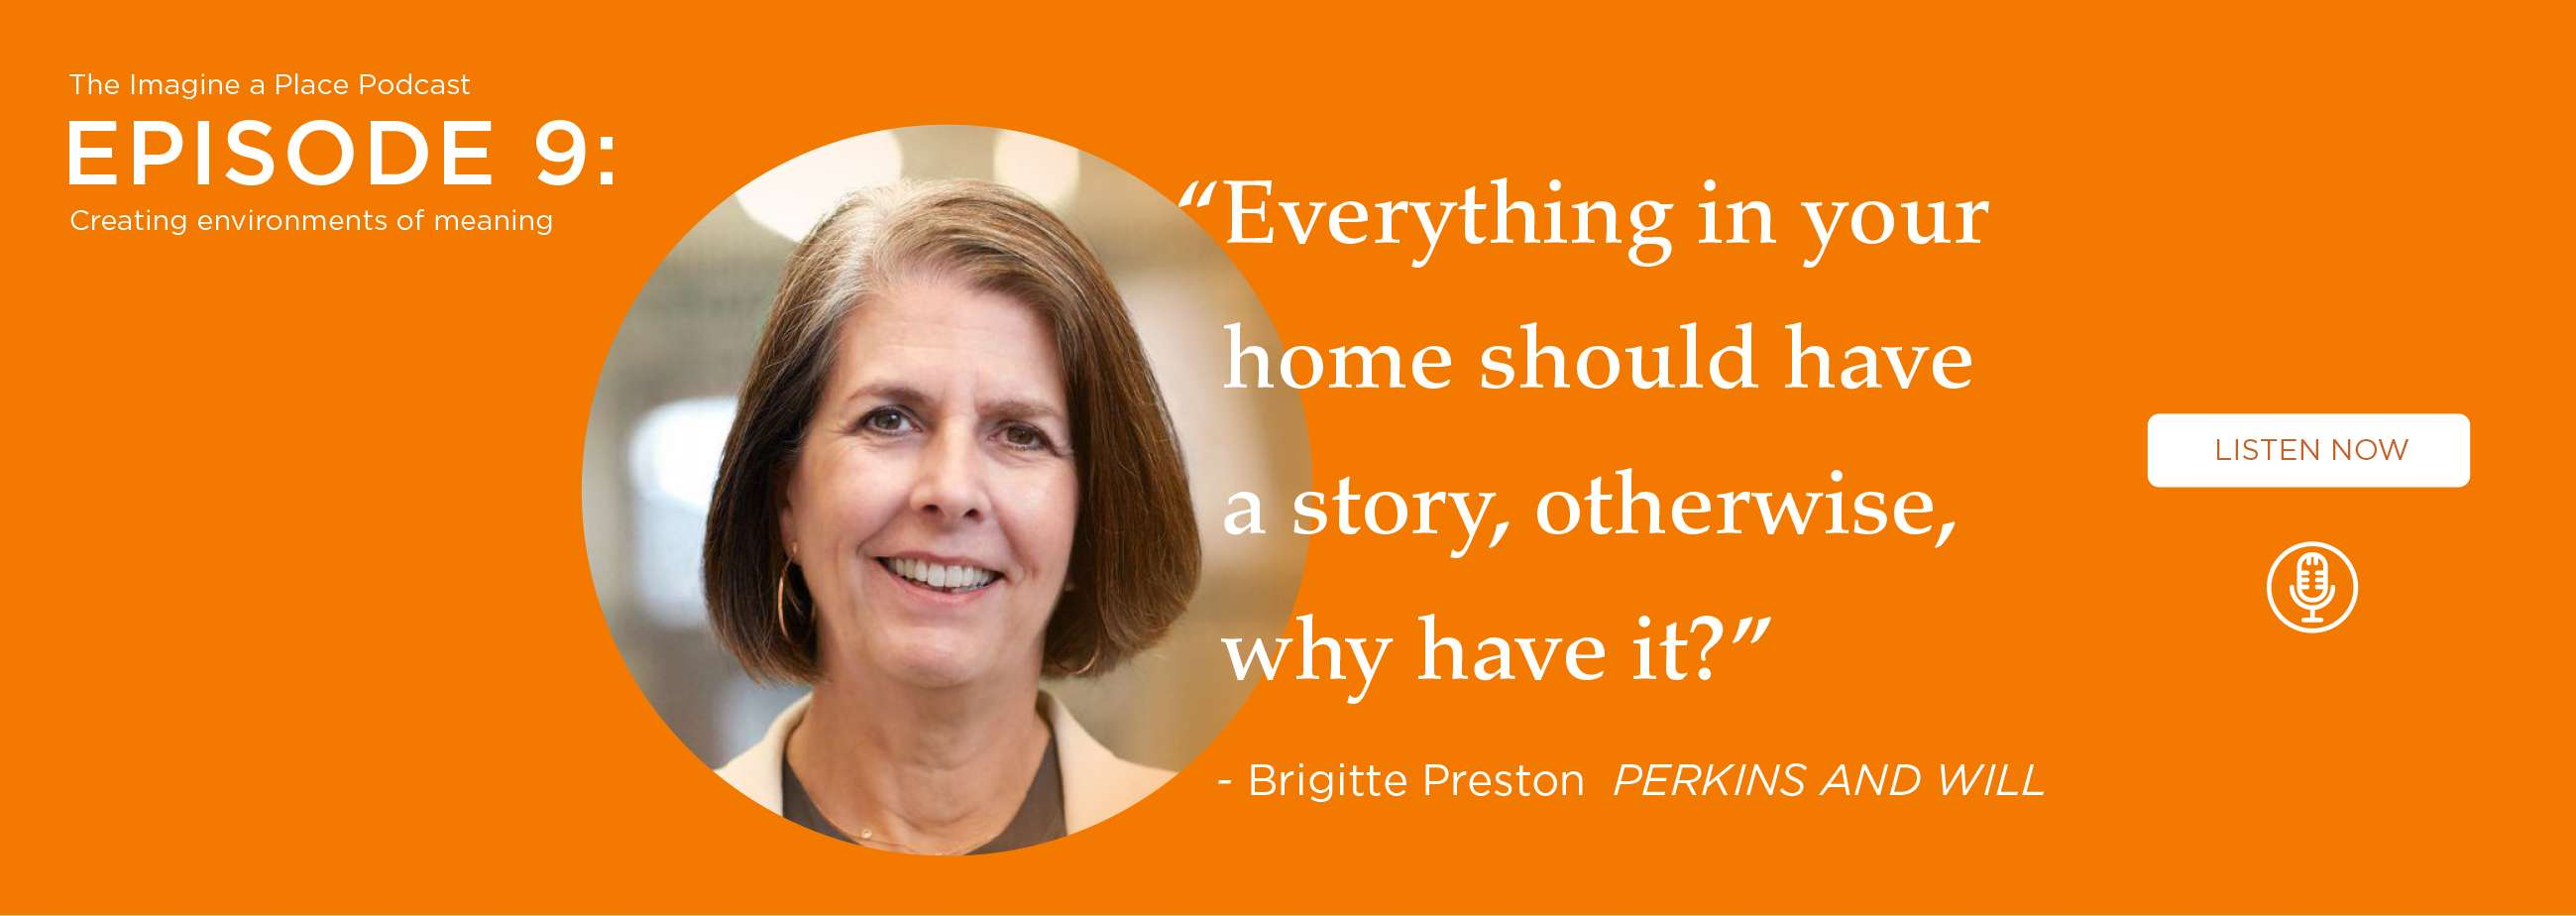 Brigitte Preston (Perkins+Will): Creating environments of meaning. - Ep. 09